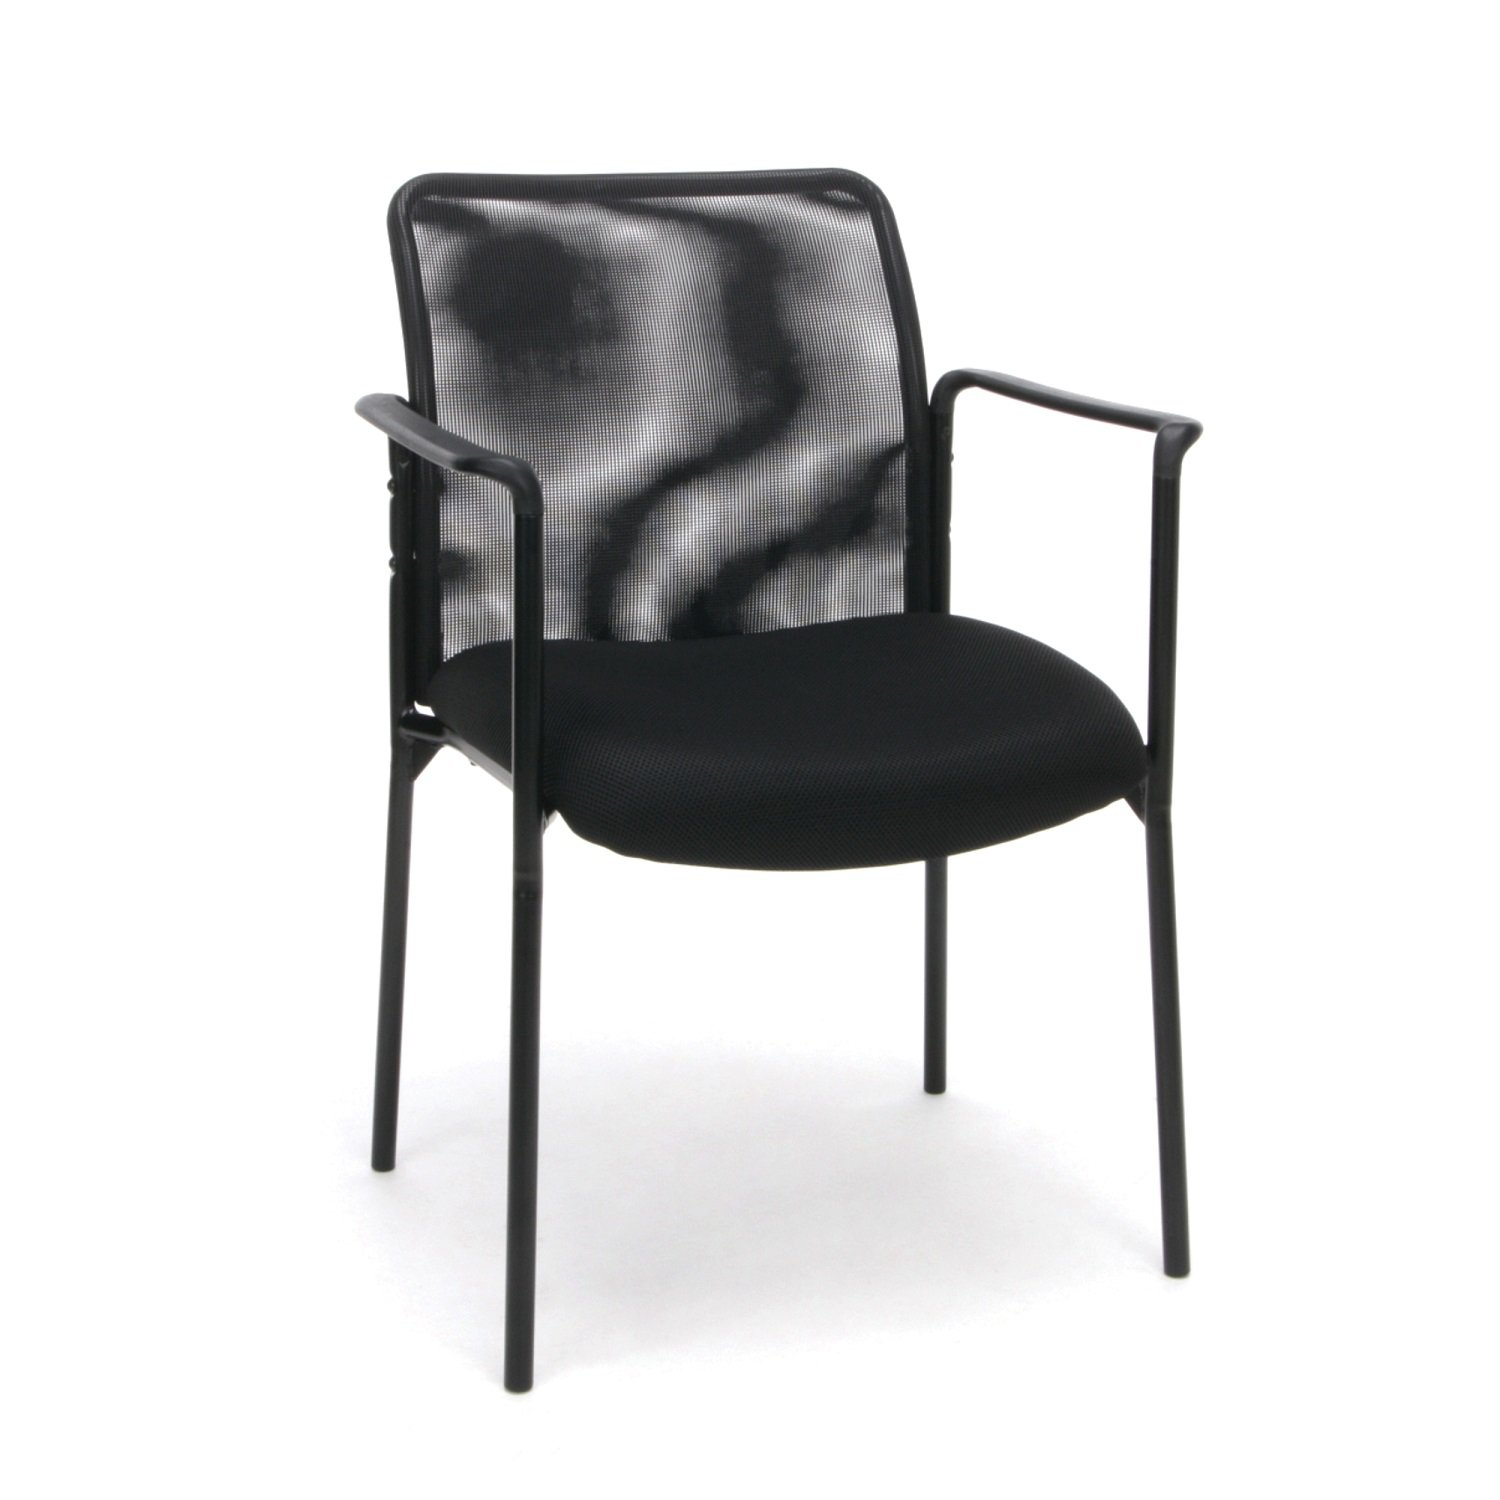 OFM Essentials Collection Mesh Back Upholstered Side Chair with Arms, Black by OFM